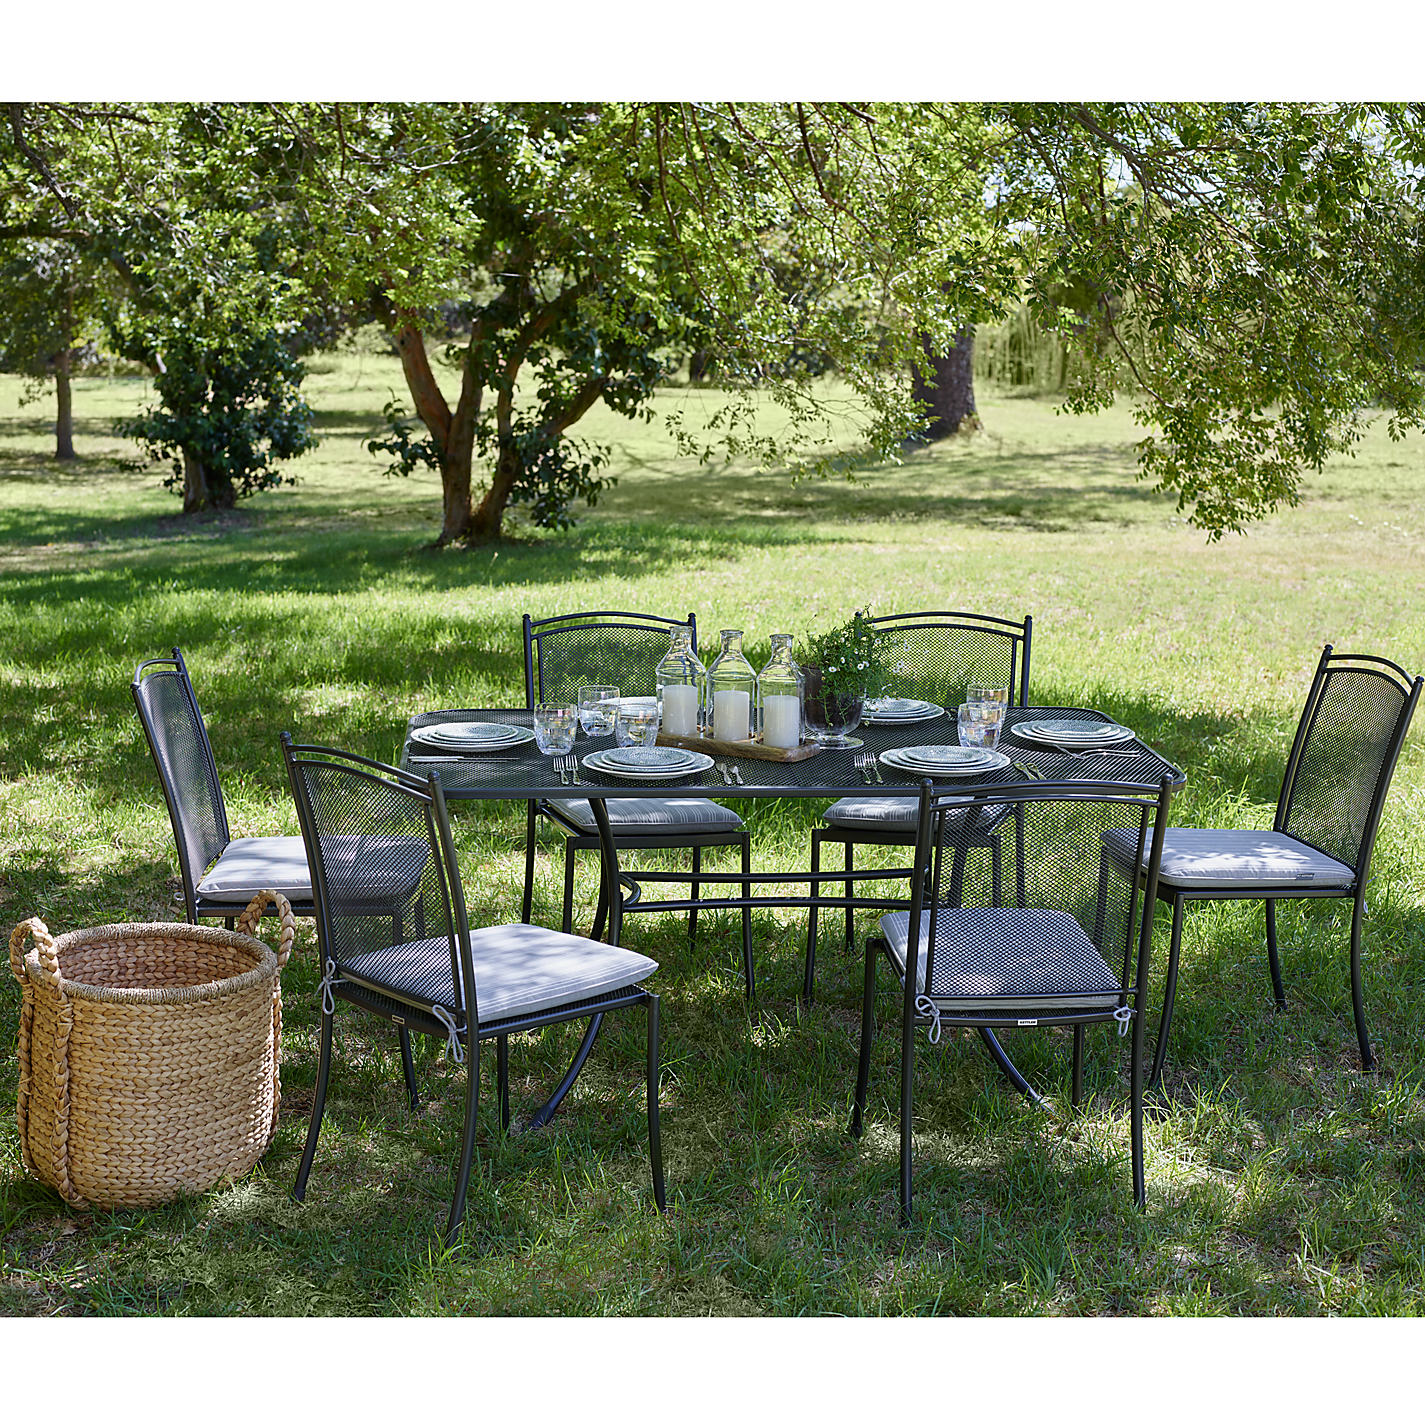 buy john lewis henley by kettler outdoor furniture online at johnlewiscom - Garden Furniture Kettler